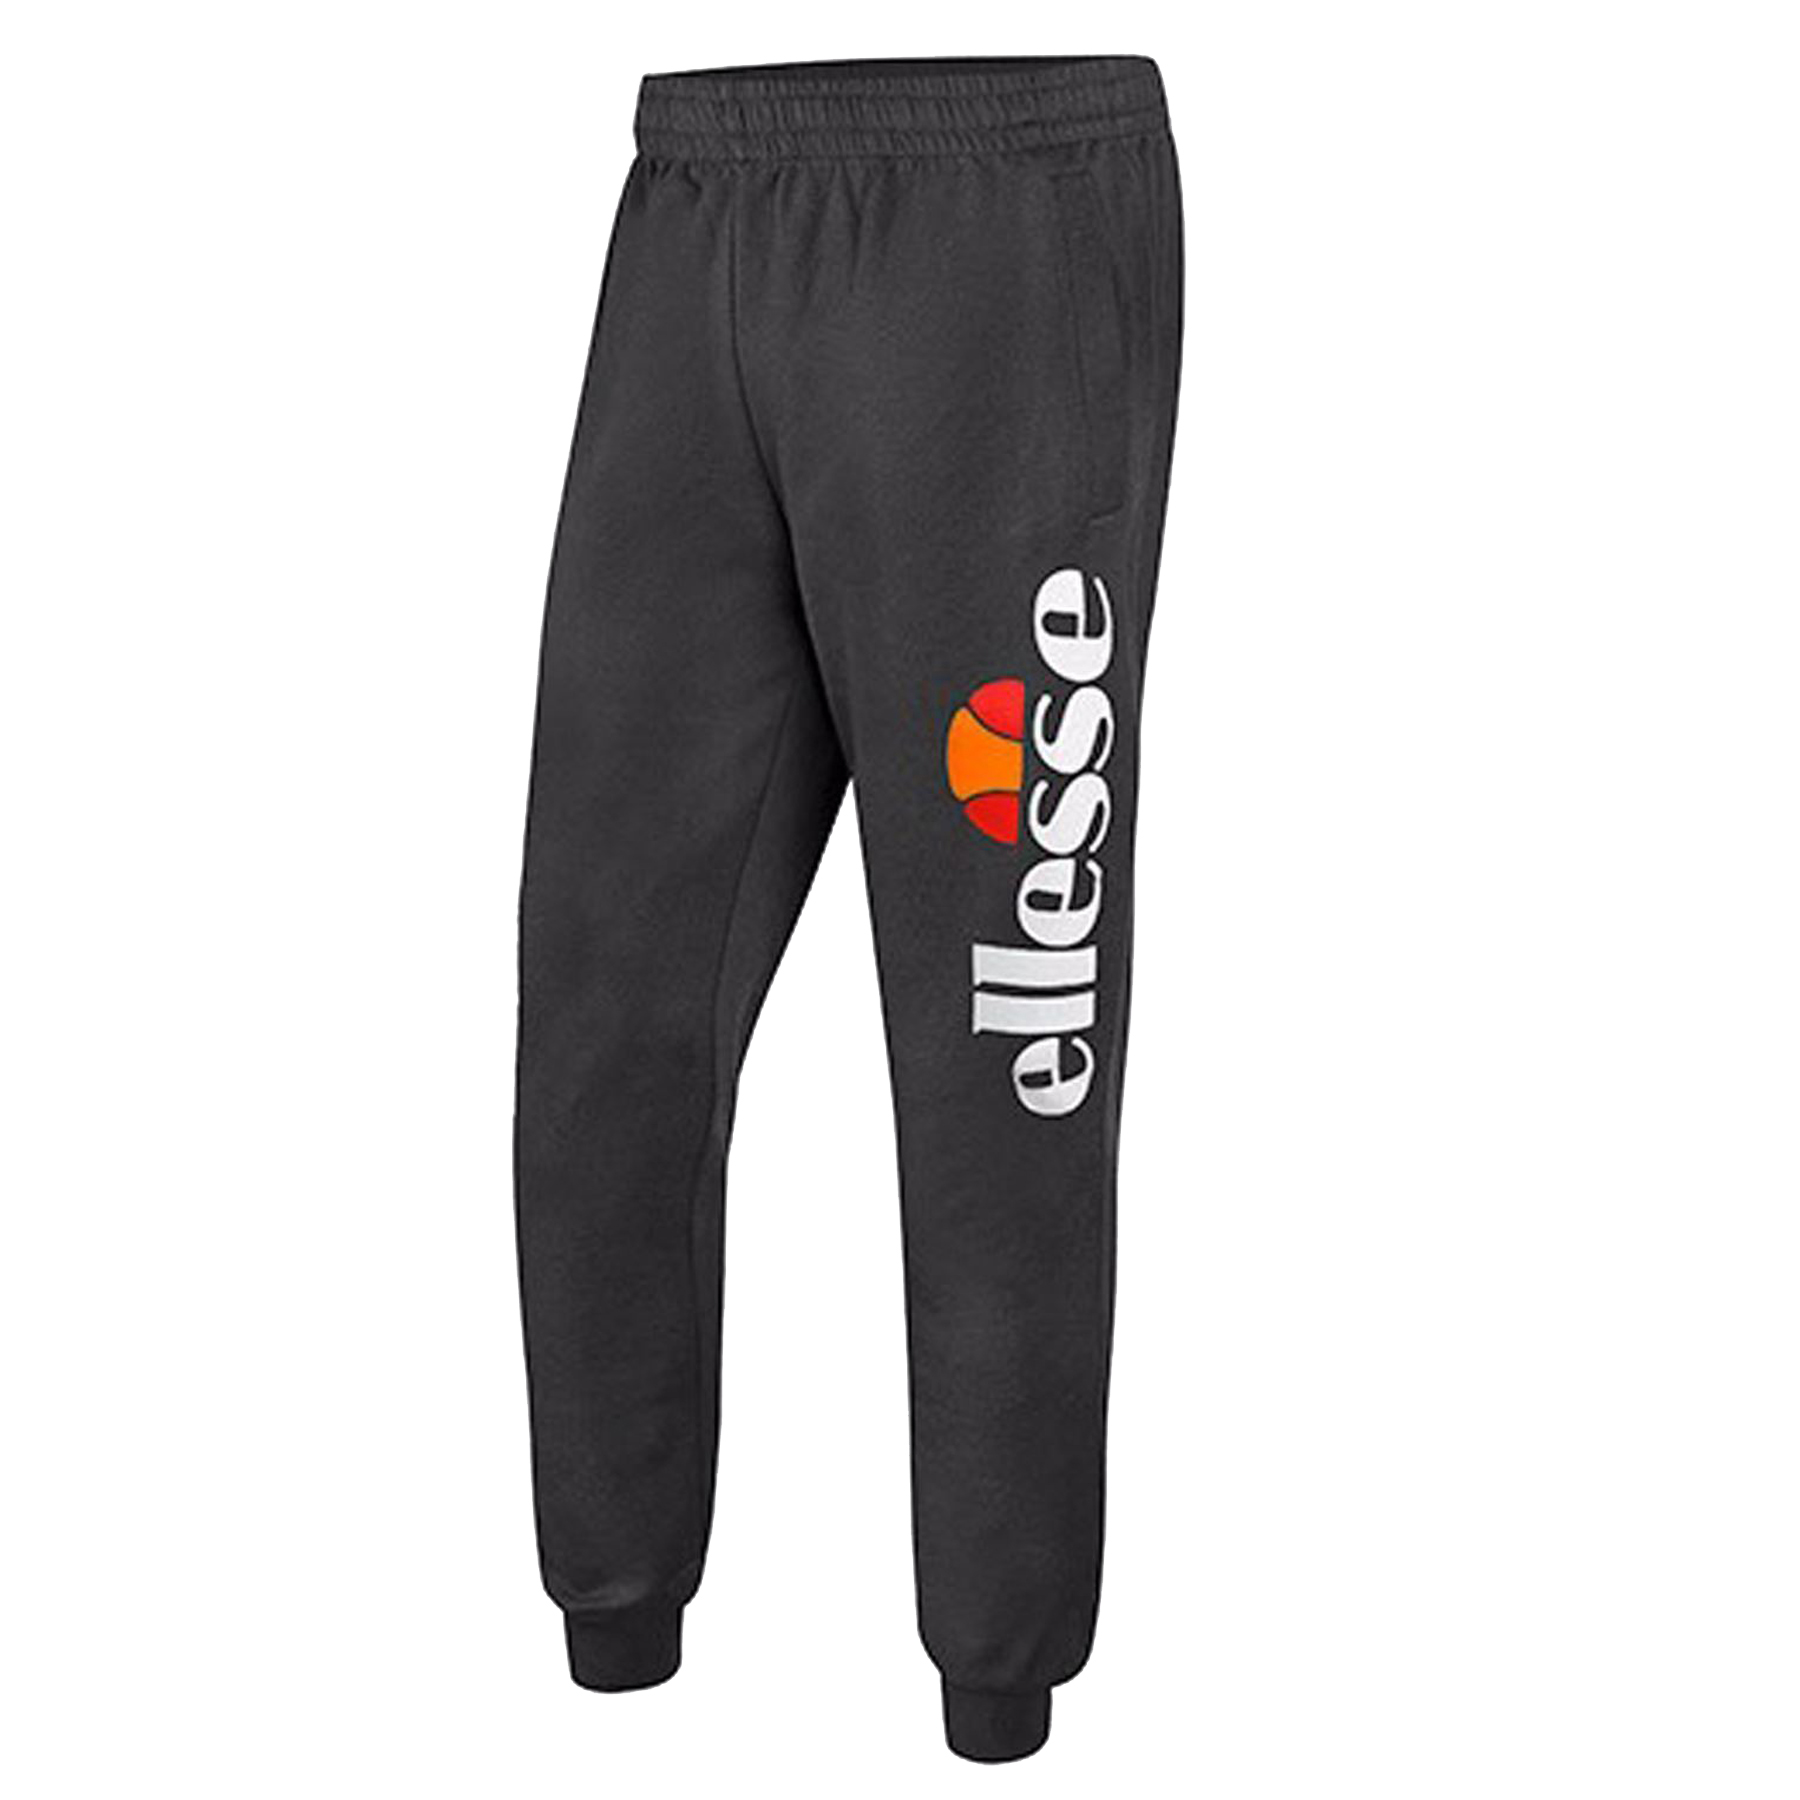 ellesse mens fleece sweat track pants tracksuit jogging bottoms new ebay. Black Bedroom Furniture Sets. Home Design Ideas